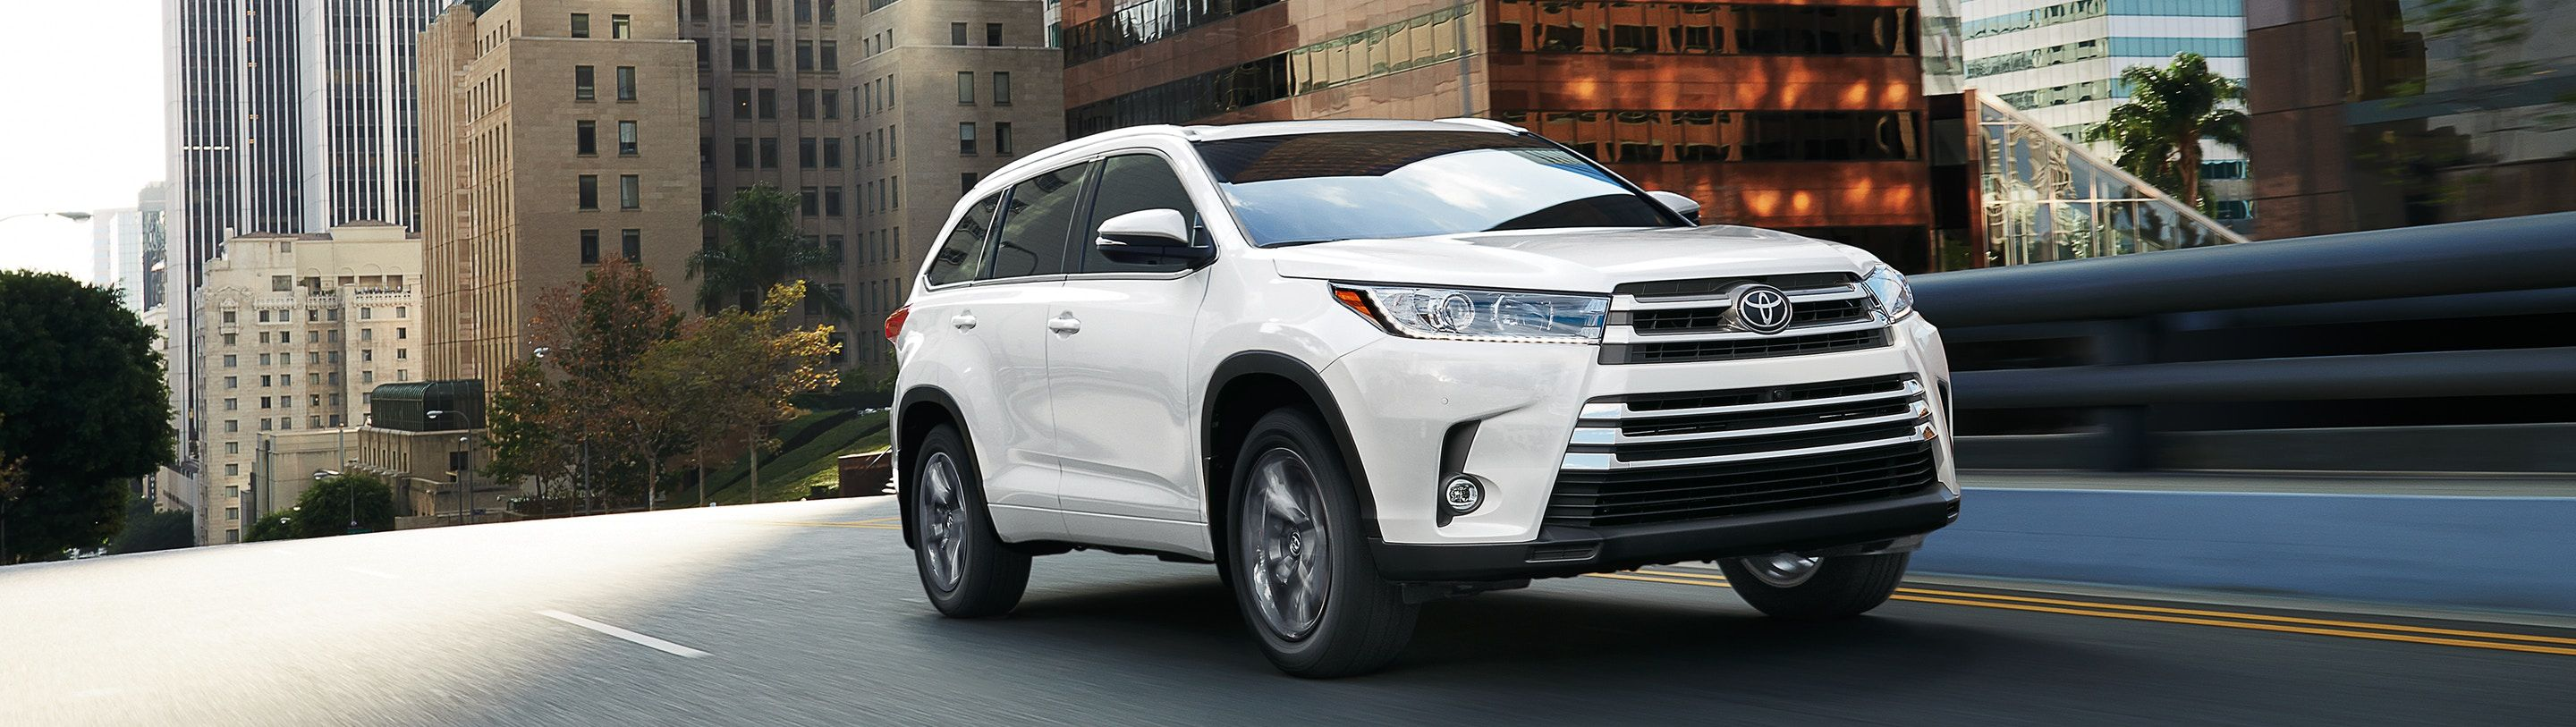 2019 Toyota Highlander Hybrid Leasing near Loves Park, IL